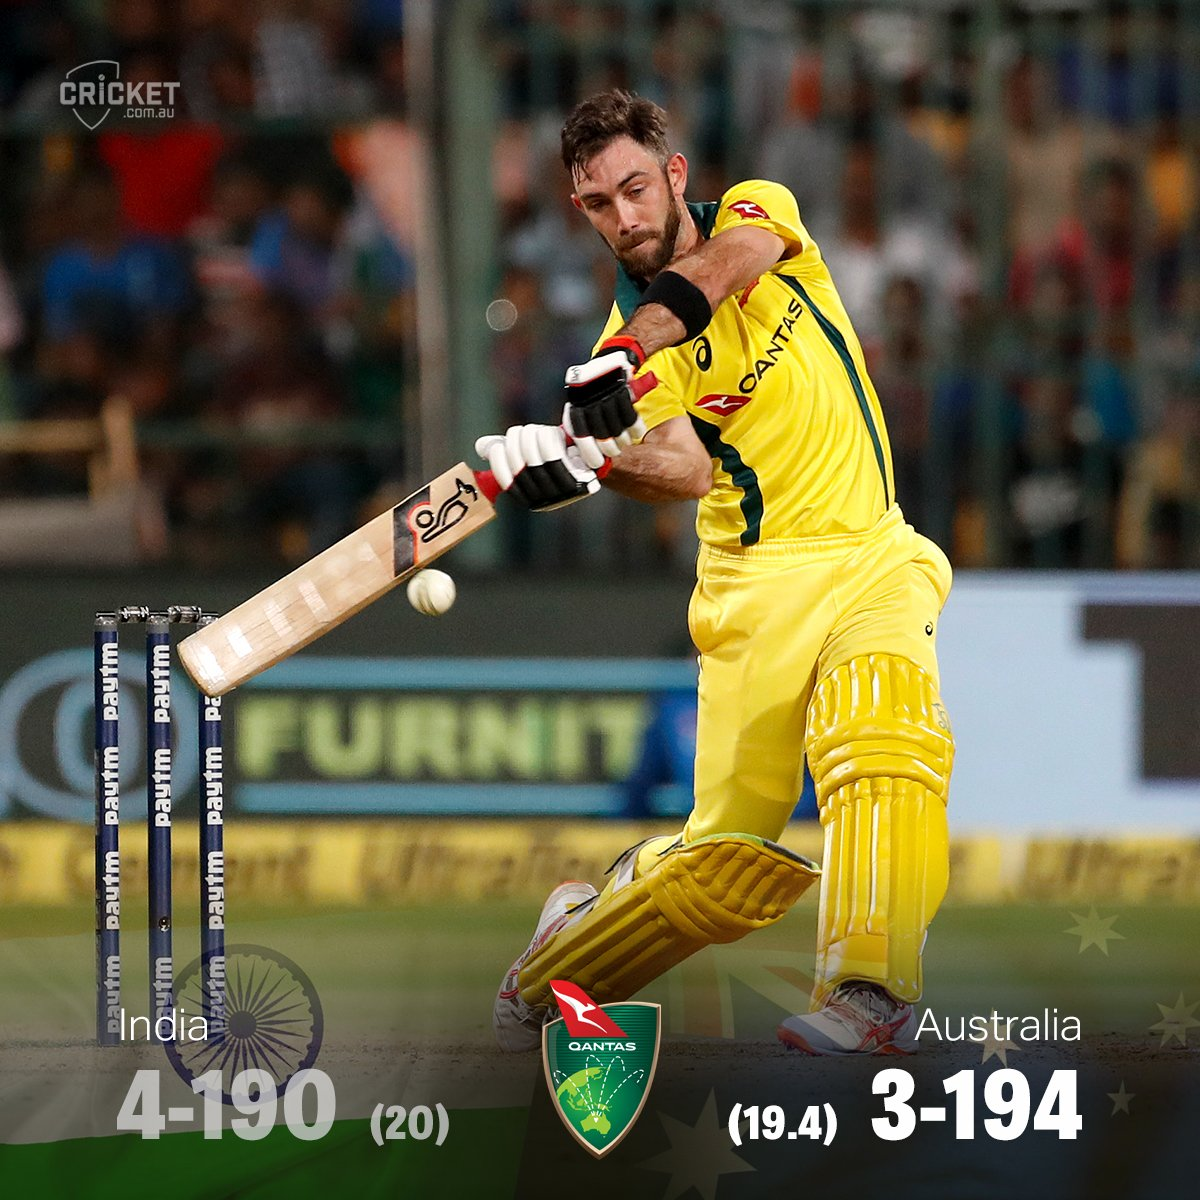 AUSSIES WIN! Glenn Maxwell's remarkable hundred leads Australia to victory with two balls to spare and they claim the T20 series 2-0! https://cricketa.us/INDvAUS19-2 #INDvAUS